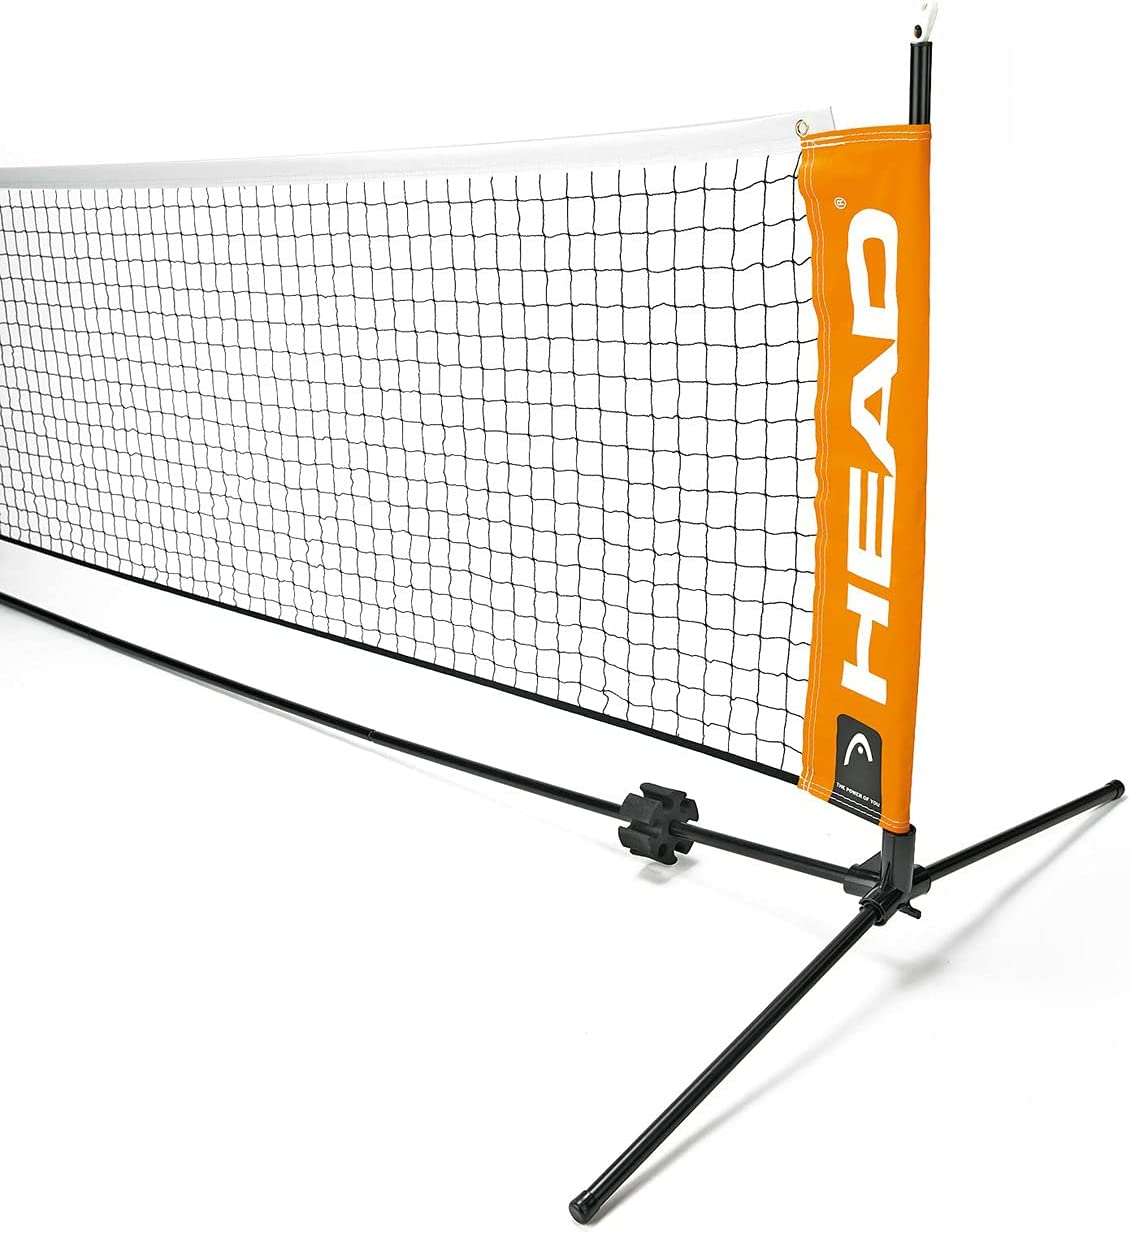 HEAD Outlet ☆ Free Shipping QST 18 Foot Youth Tennis Net 10 Under - Practice Spring new work one after another Kids'